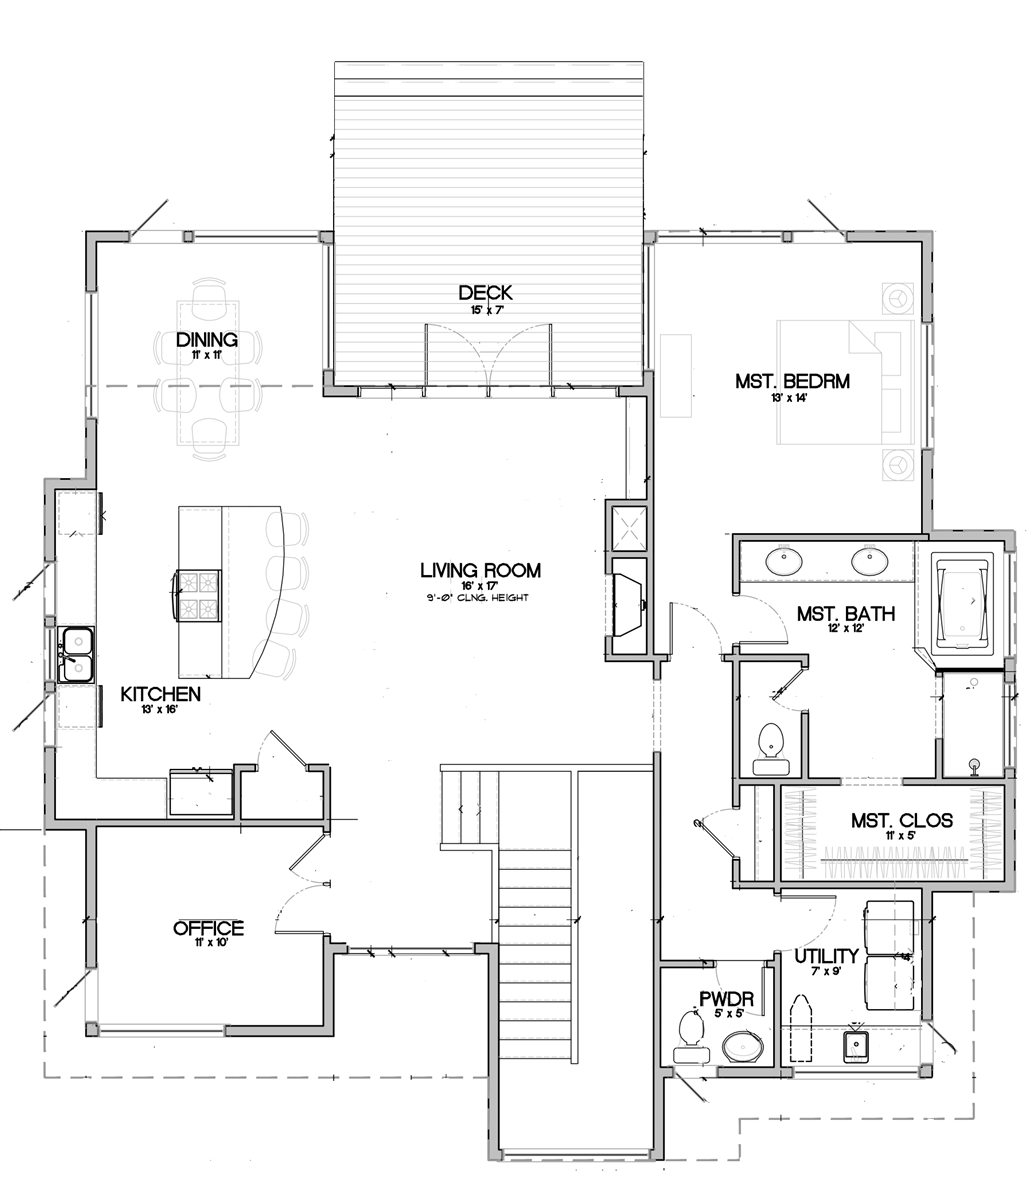 Floor Plan for SW Century Drive, Modern Decor with Urban Twist, Fenced Backyard, Pet Friendly for small dog